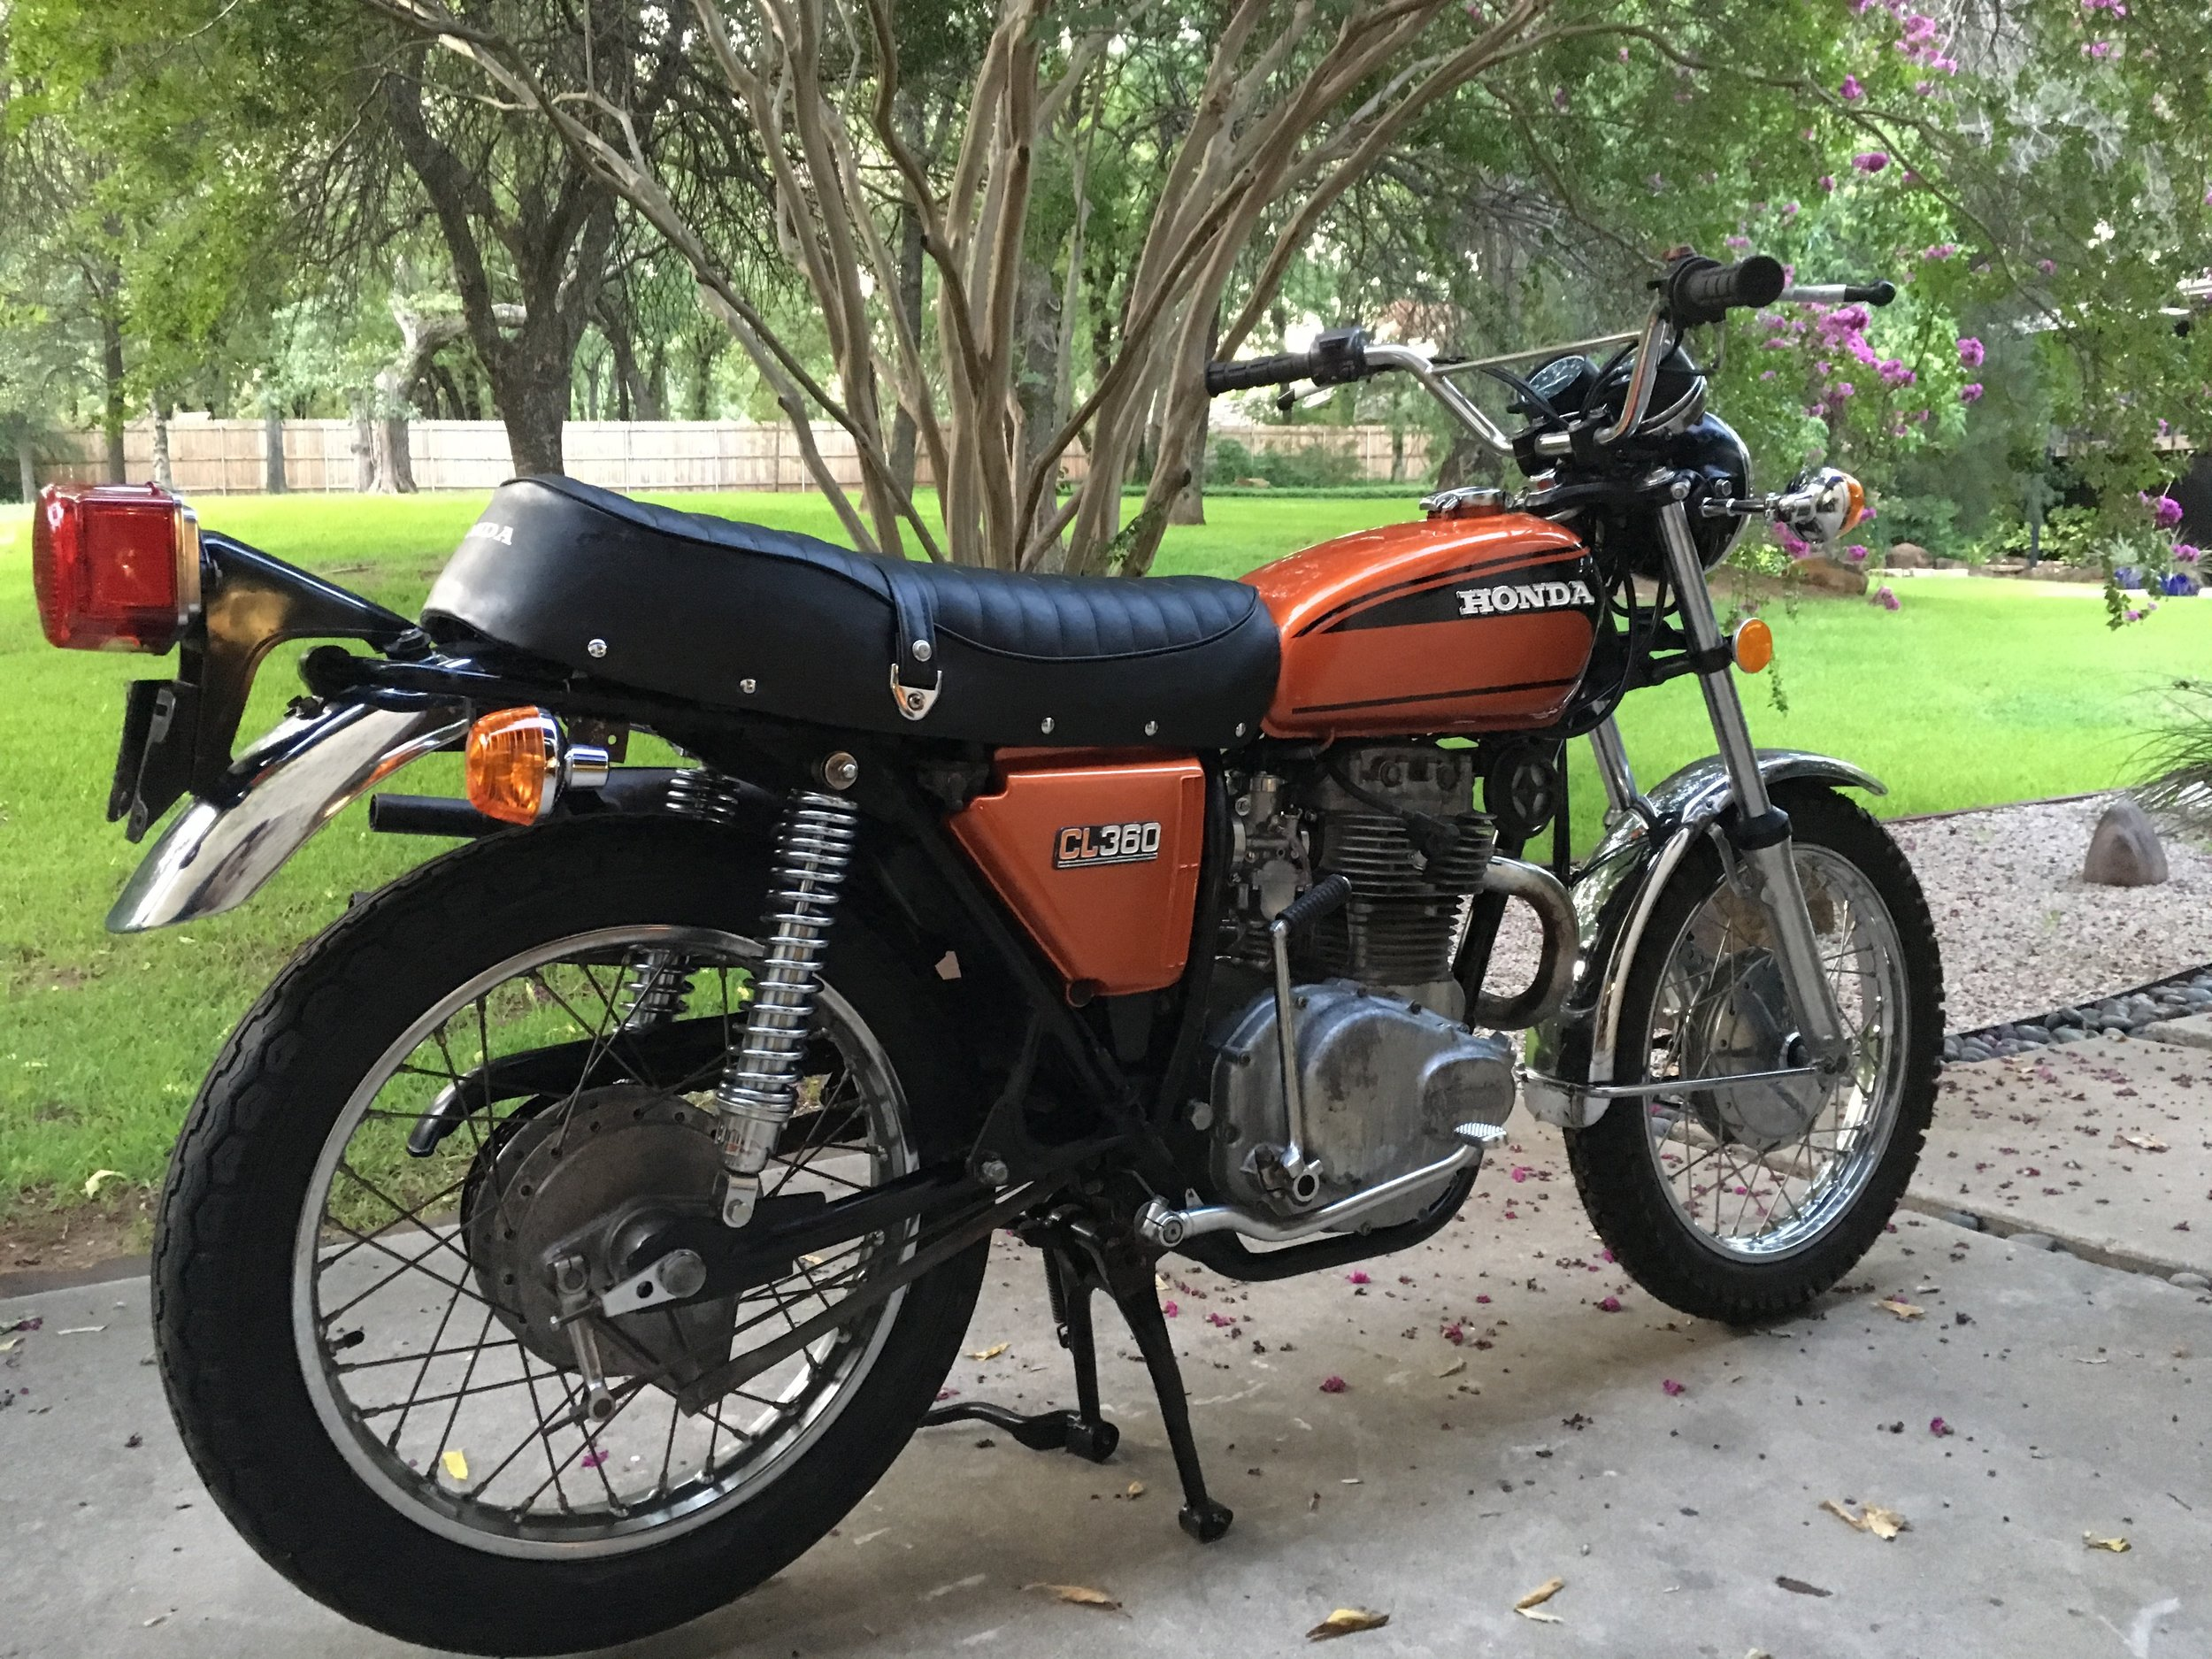 A vintage set of Japanese Redwing shocks replaced the rusted originals. A new seat cover, grab bar,turn signals, and a taillight lens have the rear-end looking fresh. The bike came without front or back footpegs. Some replacements are on order.